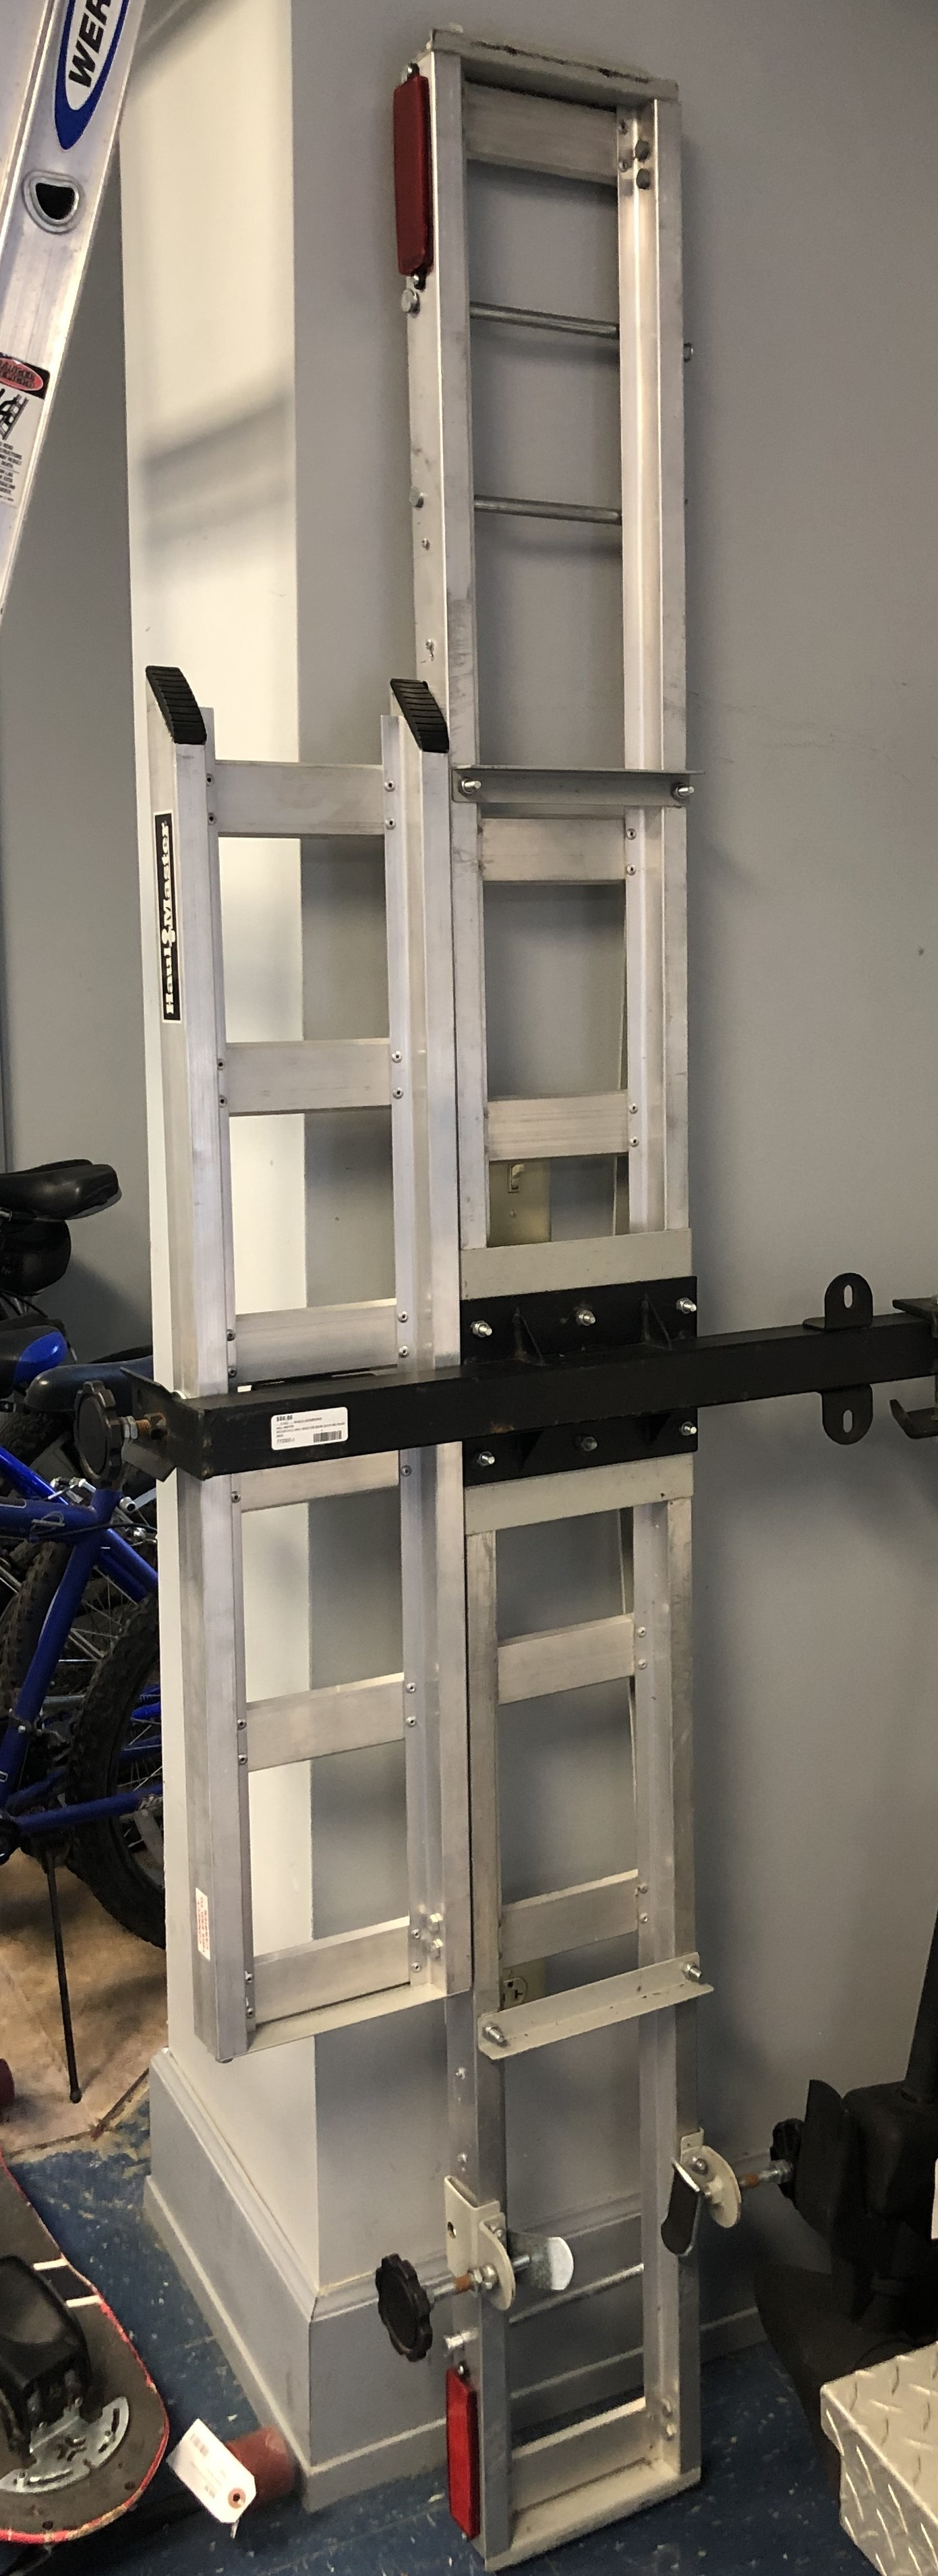 VEHICLES: MOTORCYCLE HAUL RACK FOR REESE HITCH 400 POUND MAX WEIGHT